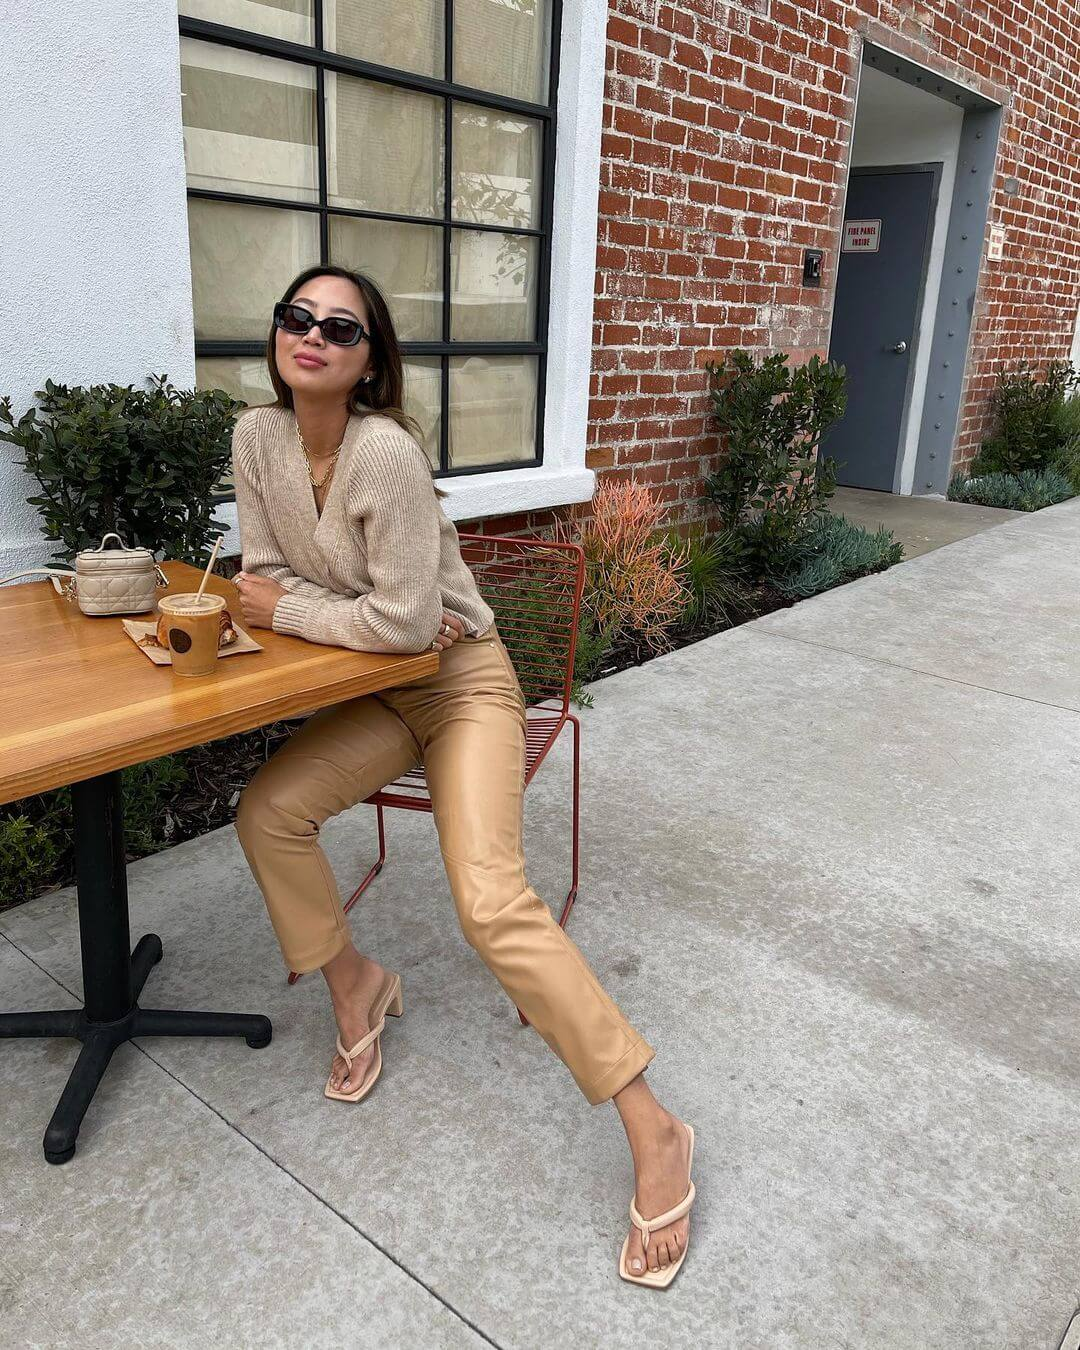 Elevate Your Look Instantly With A Head-to-Toe Beige Outfit